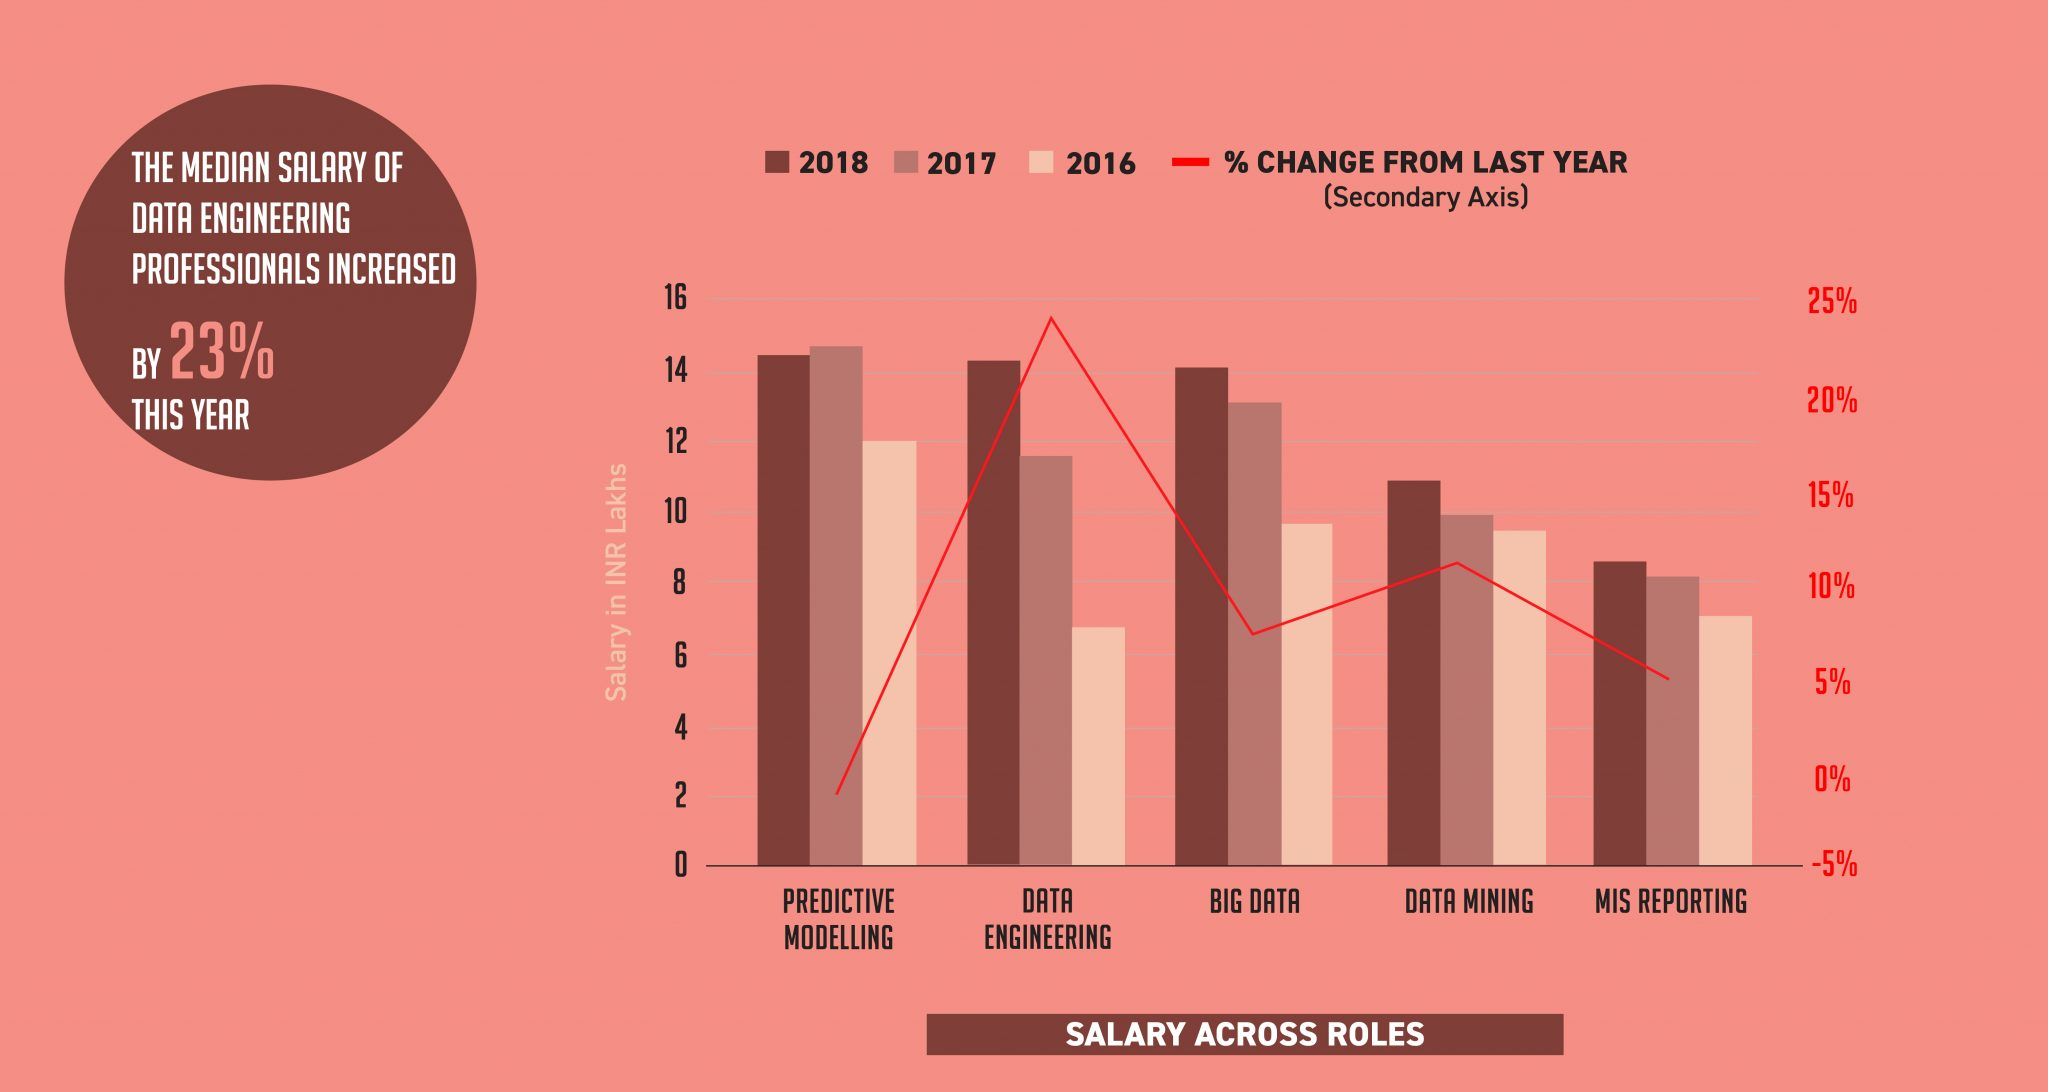 Analytics India Salary Study 2018: By AIM and Great Learning